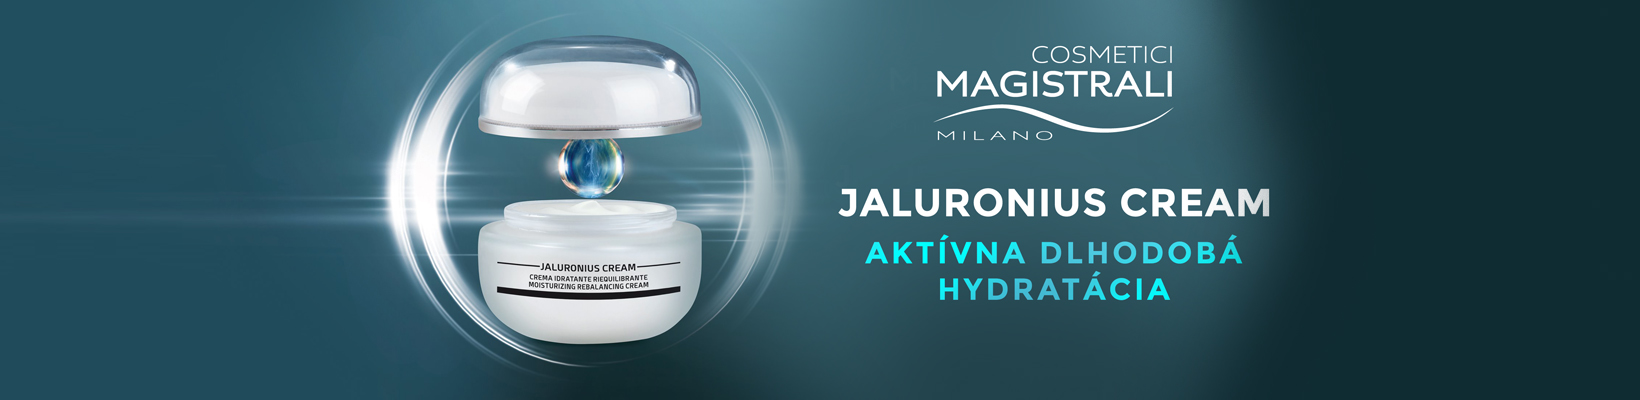 jaluronius_cream_web_banner